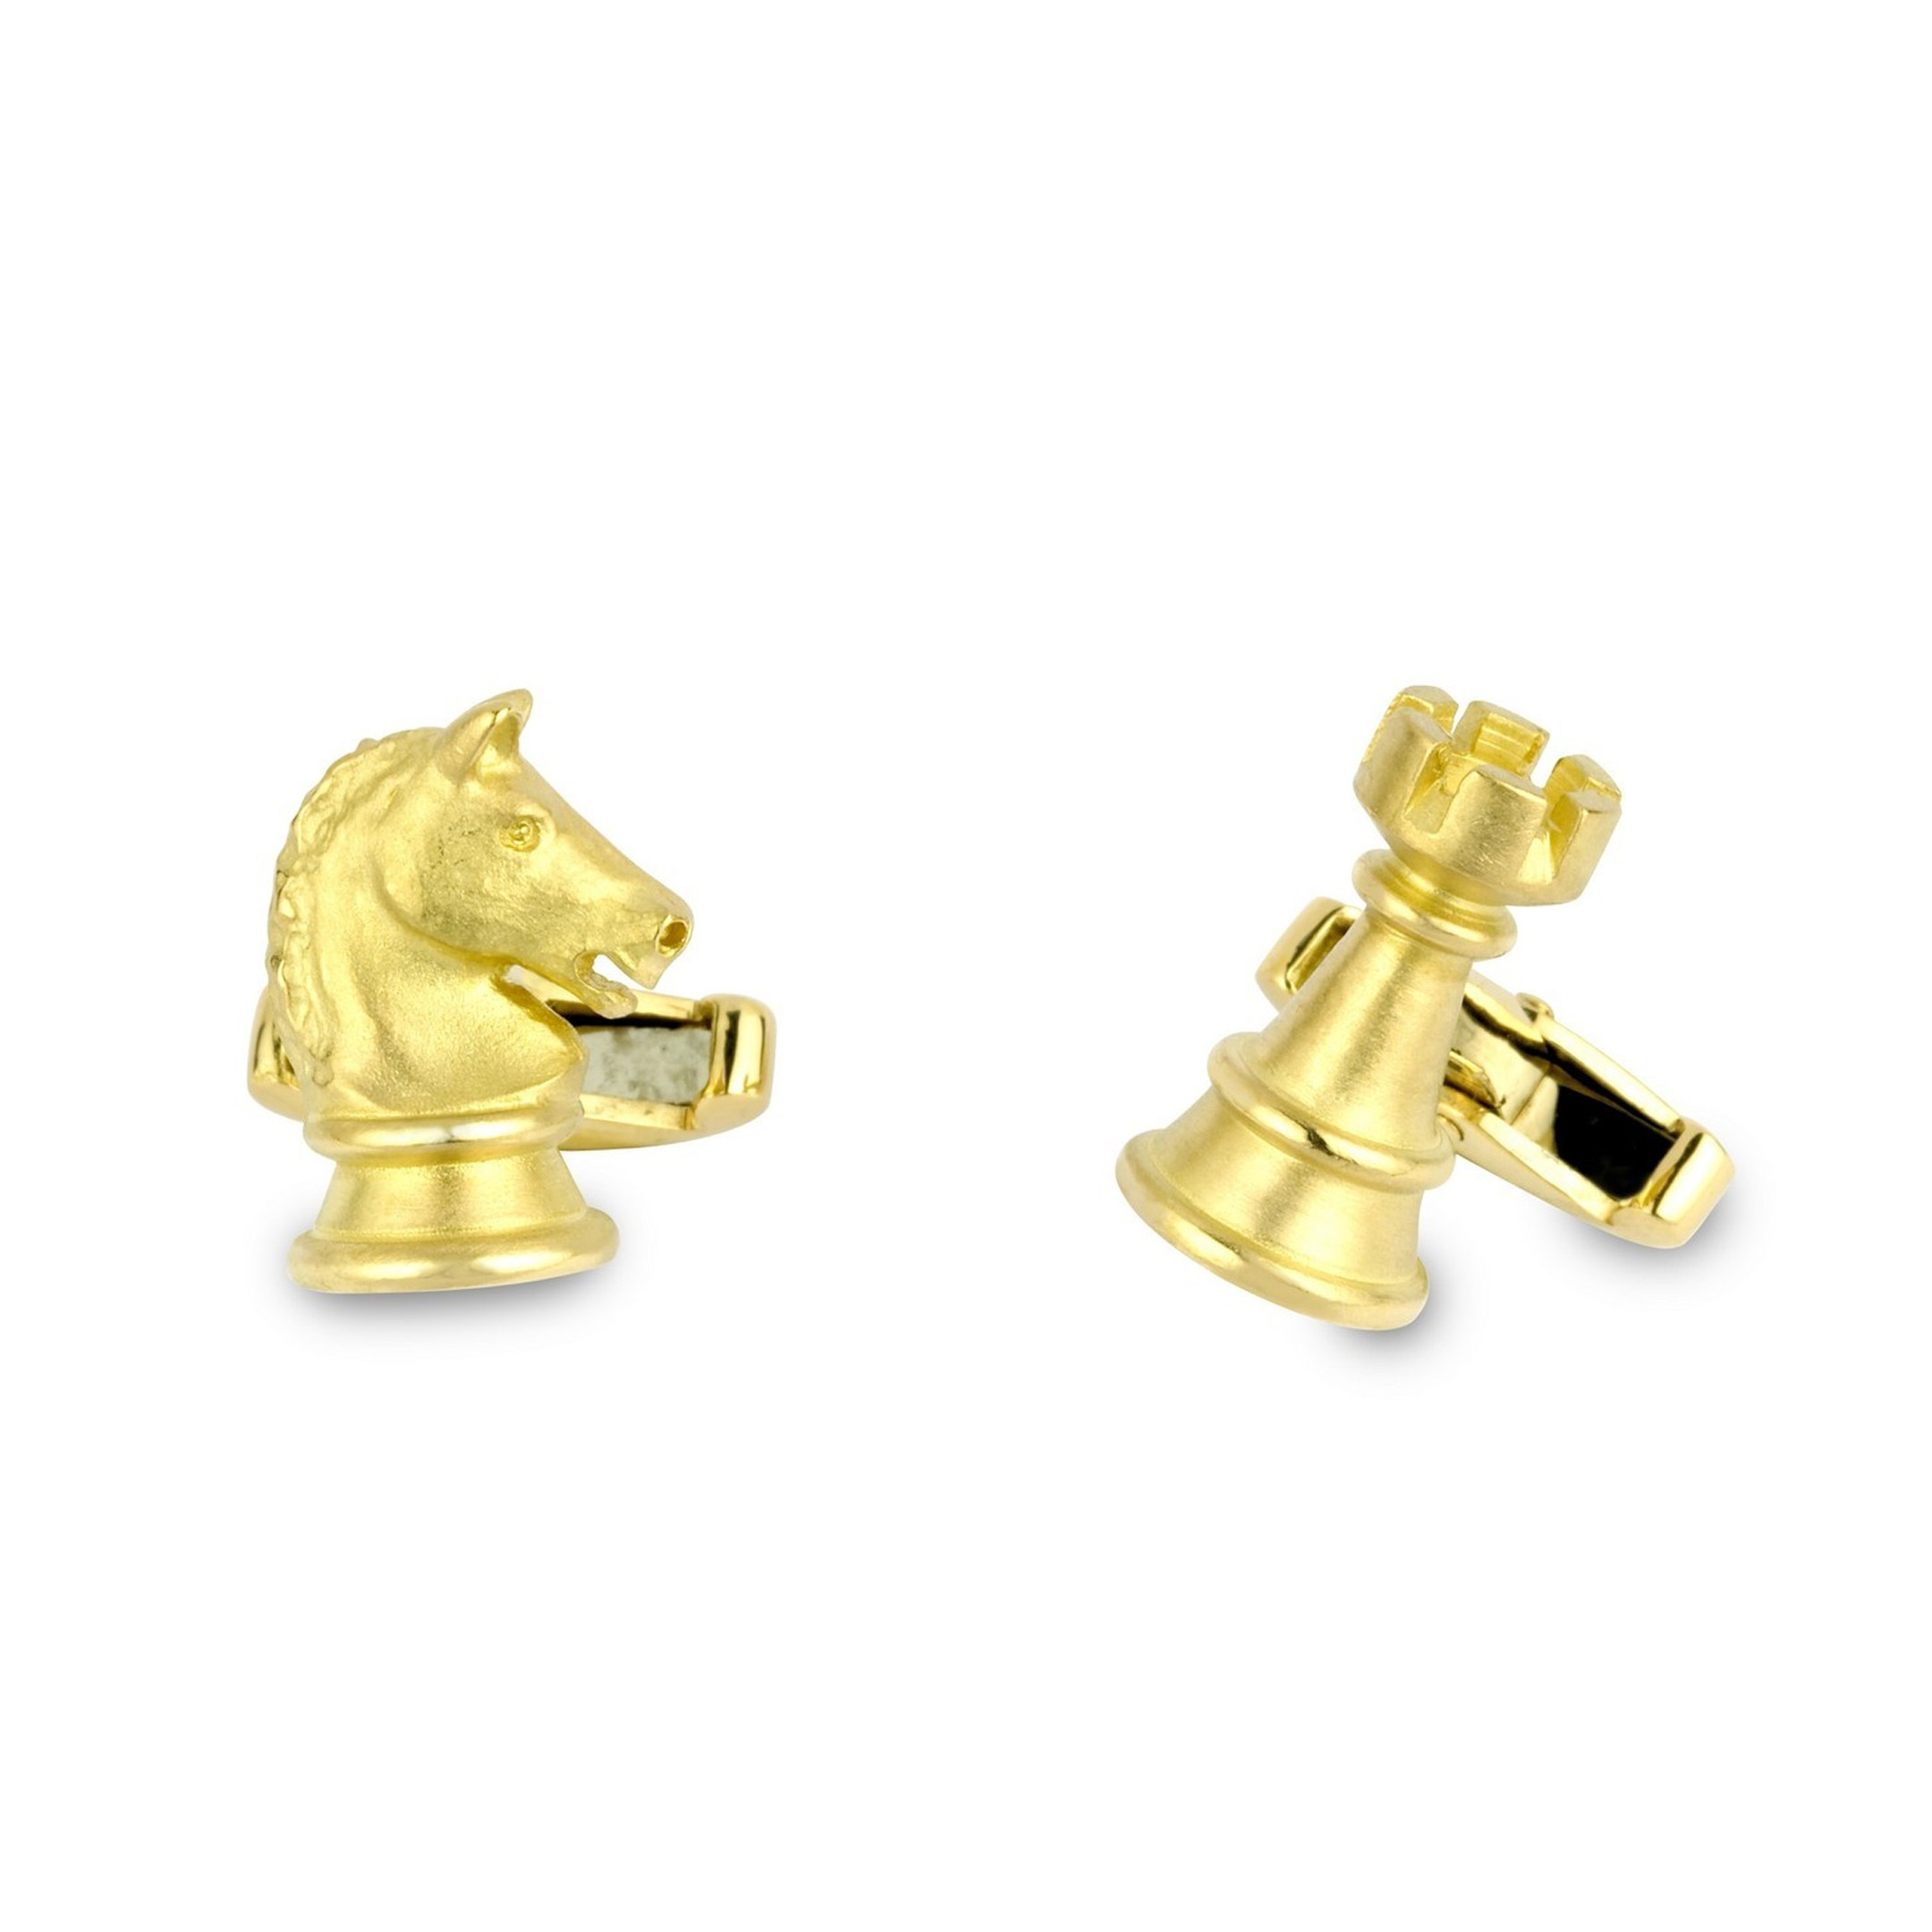 DeakingFrancis Chess cufflinks zoom